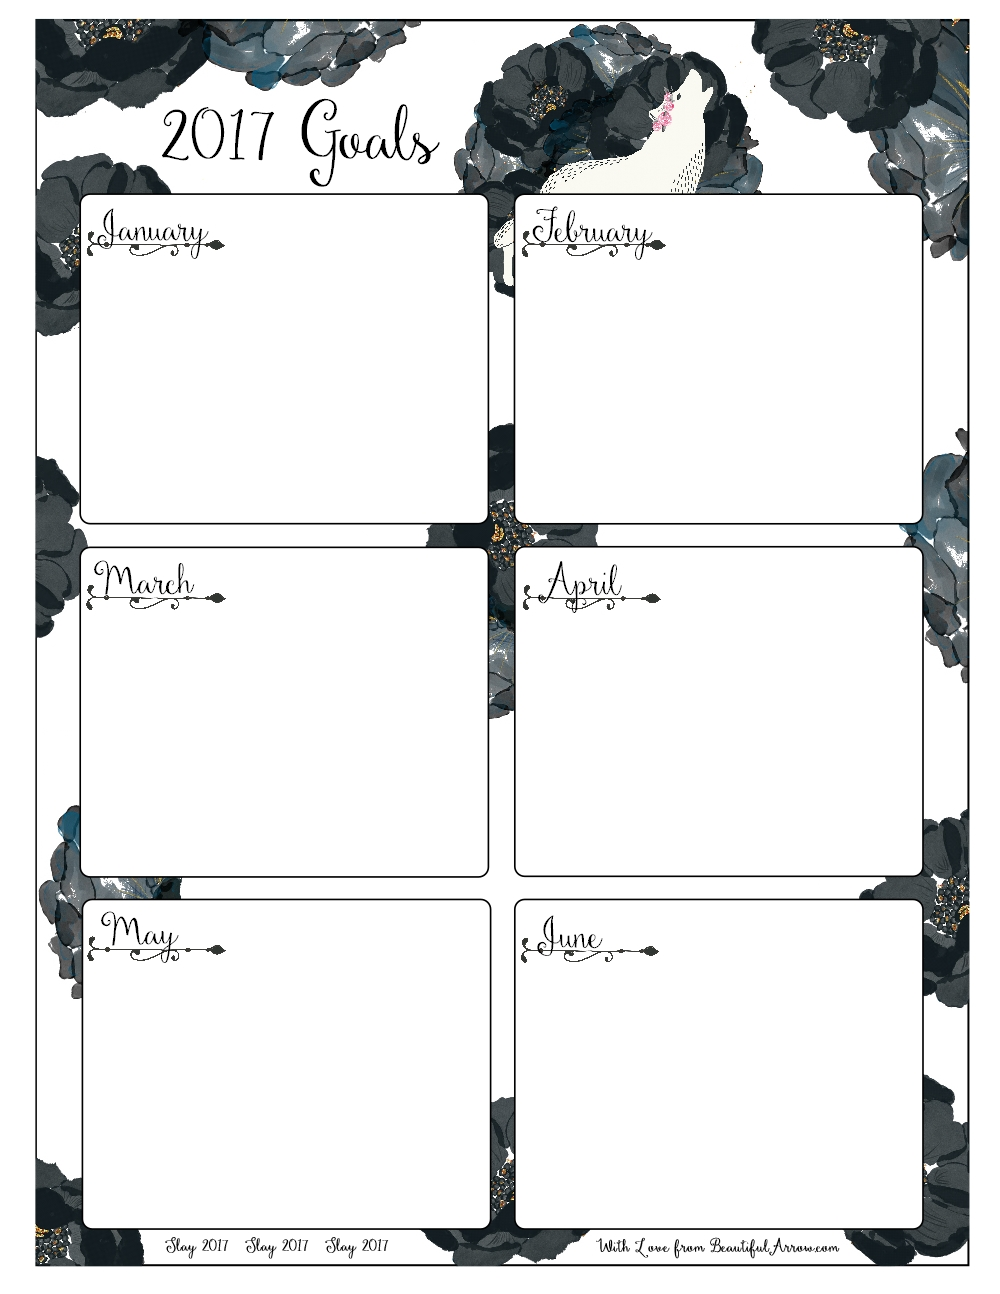 pretty fierce goal setting worksheets for and a 6 month goal worksheet for through of 2017 to be able to see at a glance the goals and accomplishments you are planning for each month